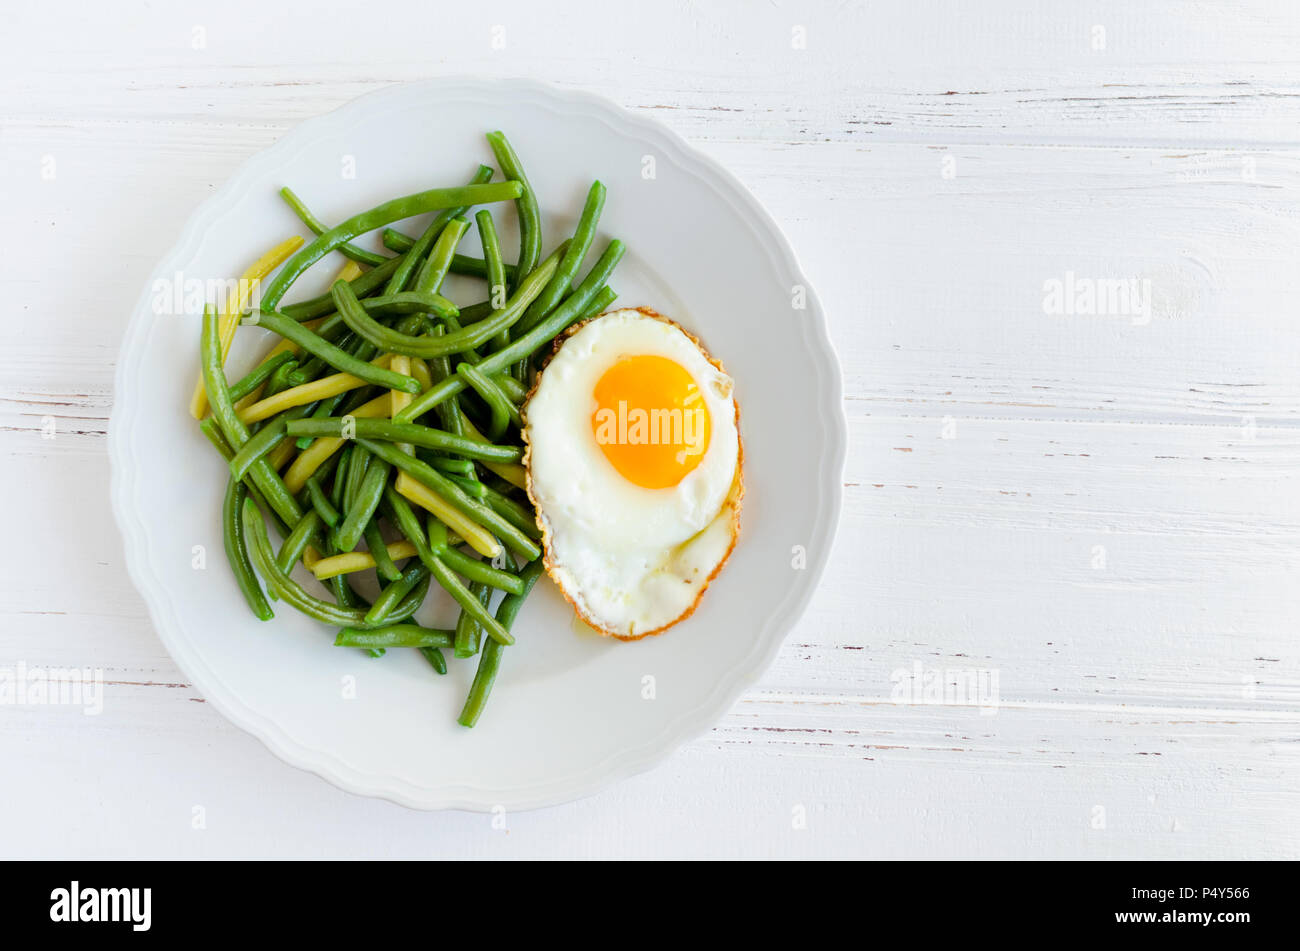 Cooked green beans with fried egg in white plate on wooden background with space for text. Healthy vegetarian food concept. Top view. Copy space. - Stock Image